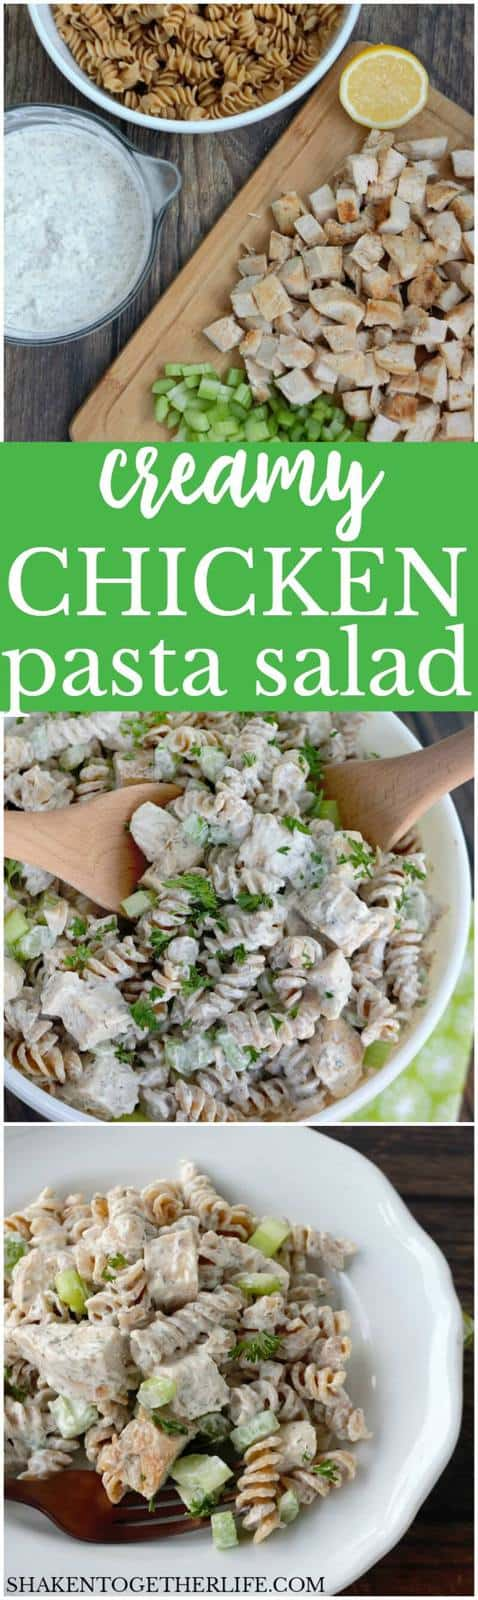 This is the BEST Creamy Chicken Pasta Salad! It is loaded with tender chicken, crunchy celery and a flavor packed dressing with ranch, dill and garlic! Perfect for lunch, brunch, a picnic or potluck!